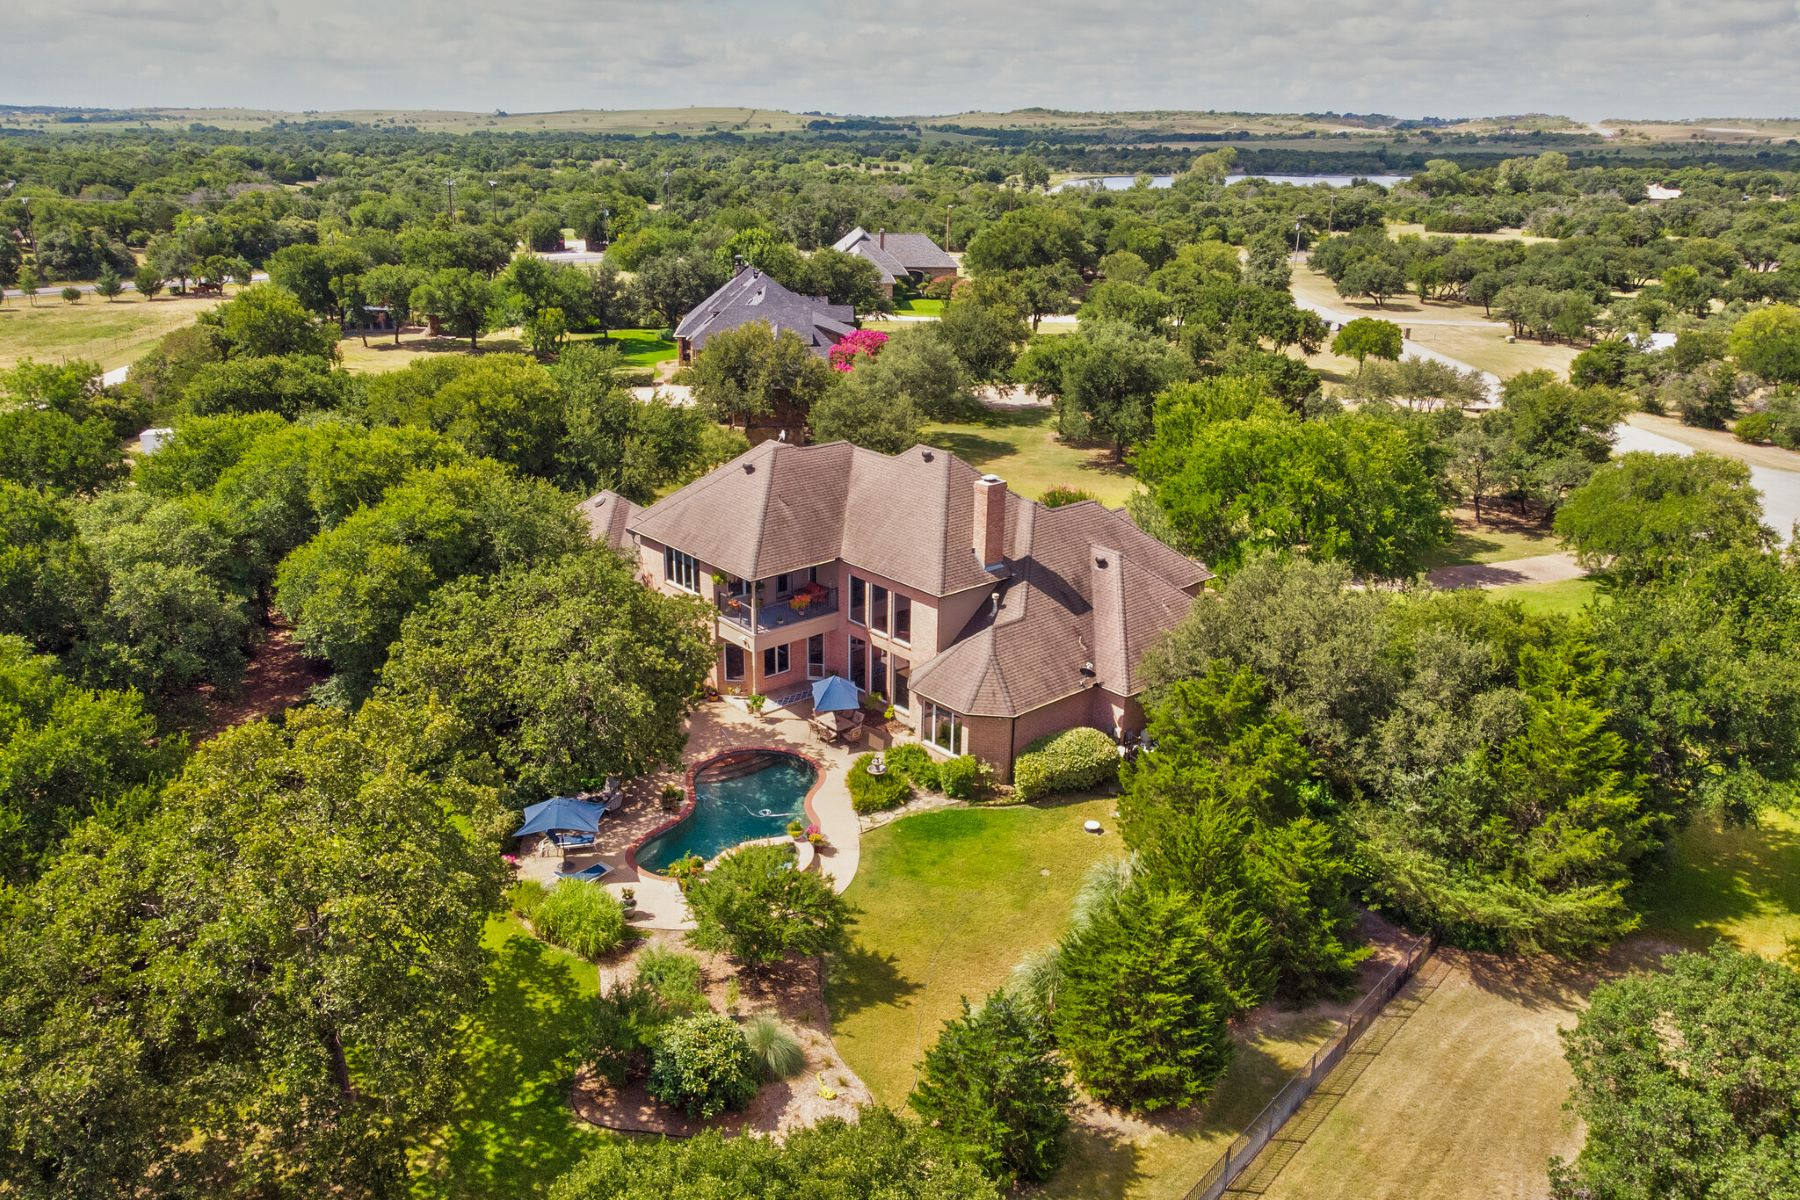 Single Family Homes for Sale at 2 Acres in Aledo ISD 108 Bridle Wood Court Aledo, Texas 76008 United States